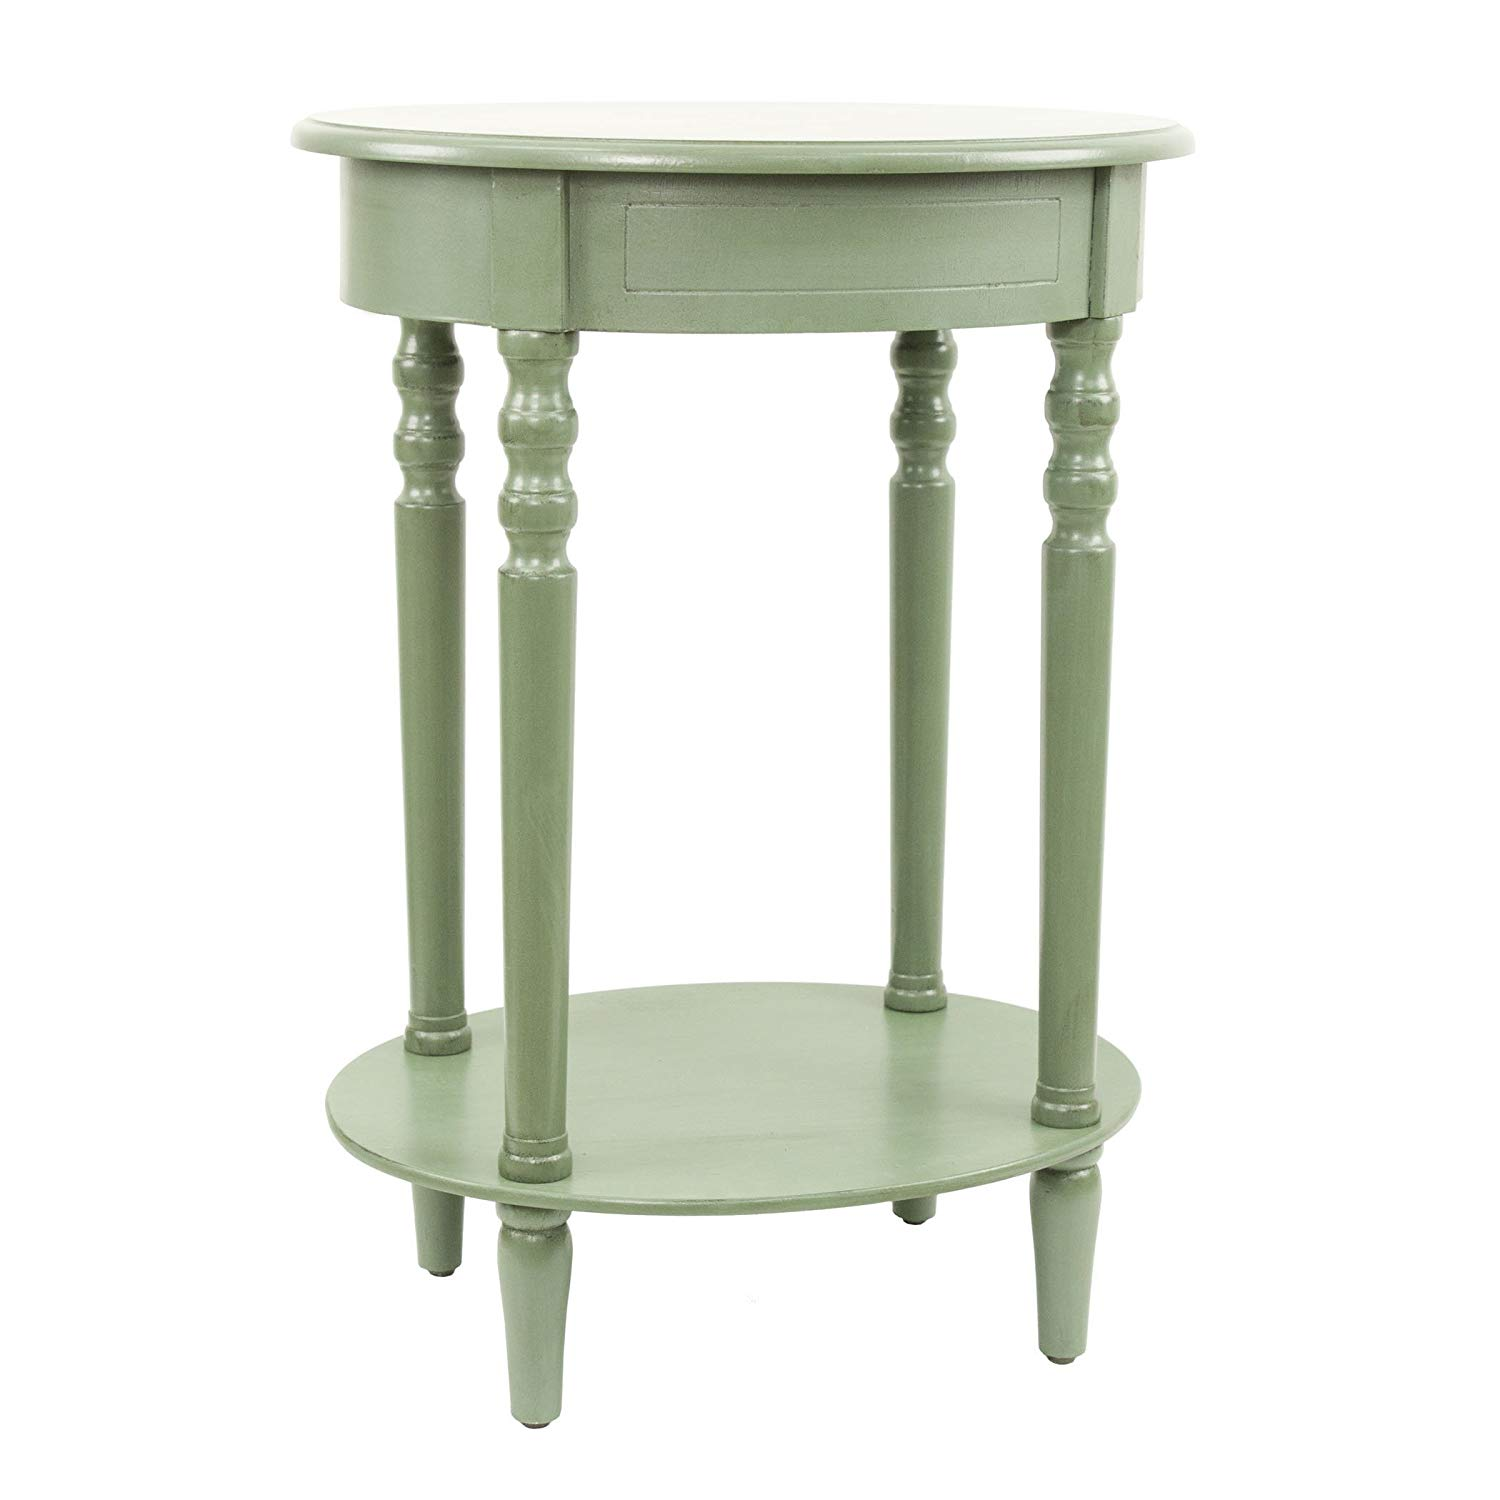 decor therapy simplify oval accent table antique green small kitchen dining mirage mirrored cabinet narrow with doors pier inch deep console high top porcelain lamp patio